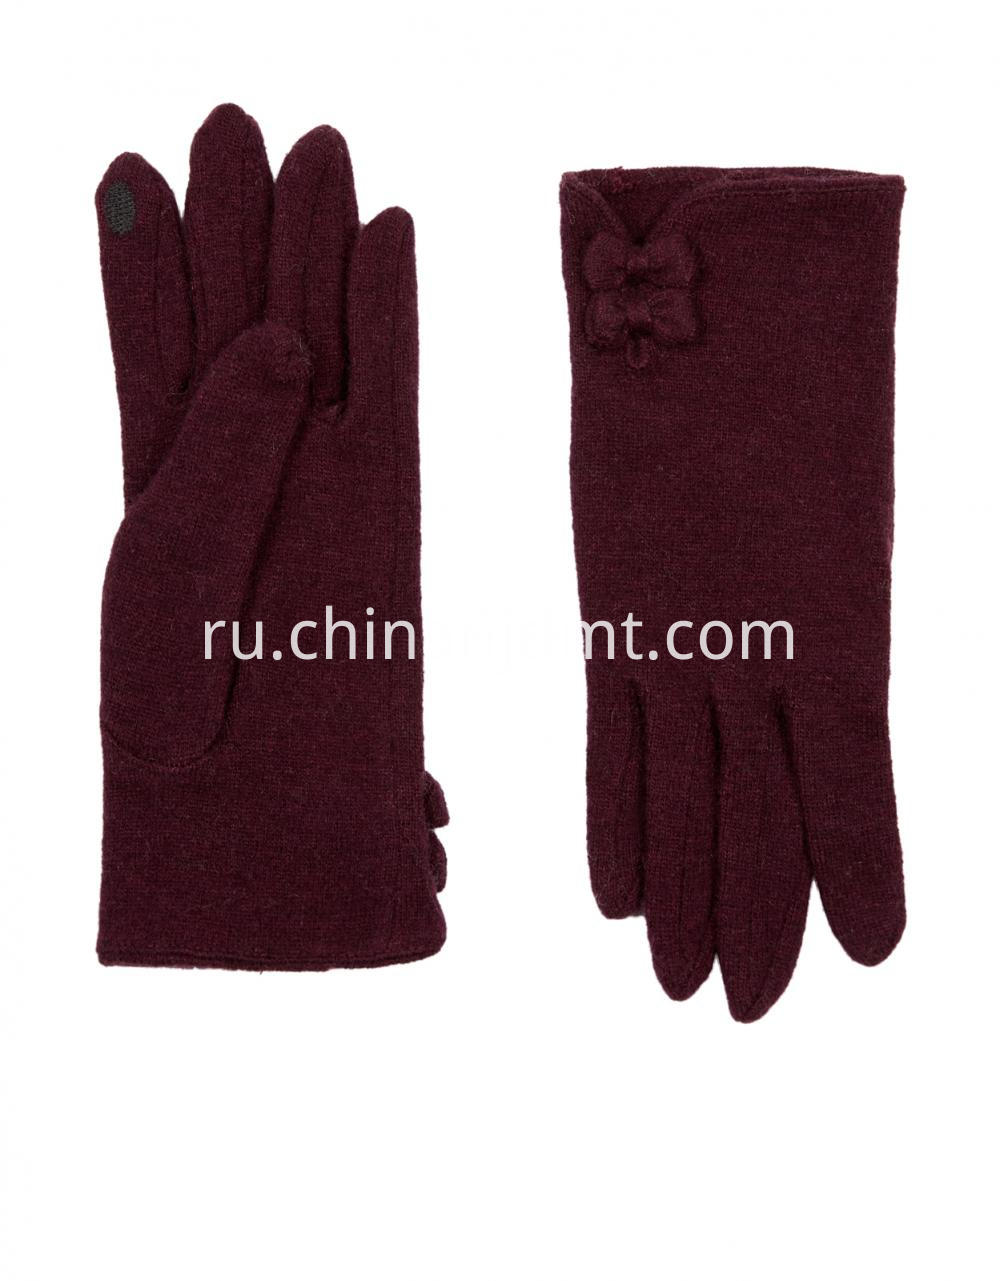 Wool Smart Glove With Bows Gloves 04